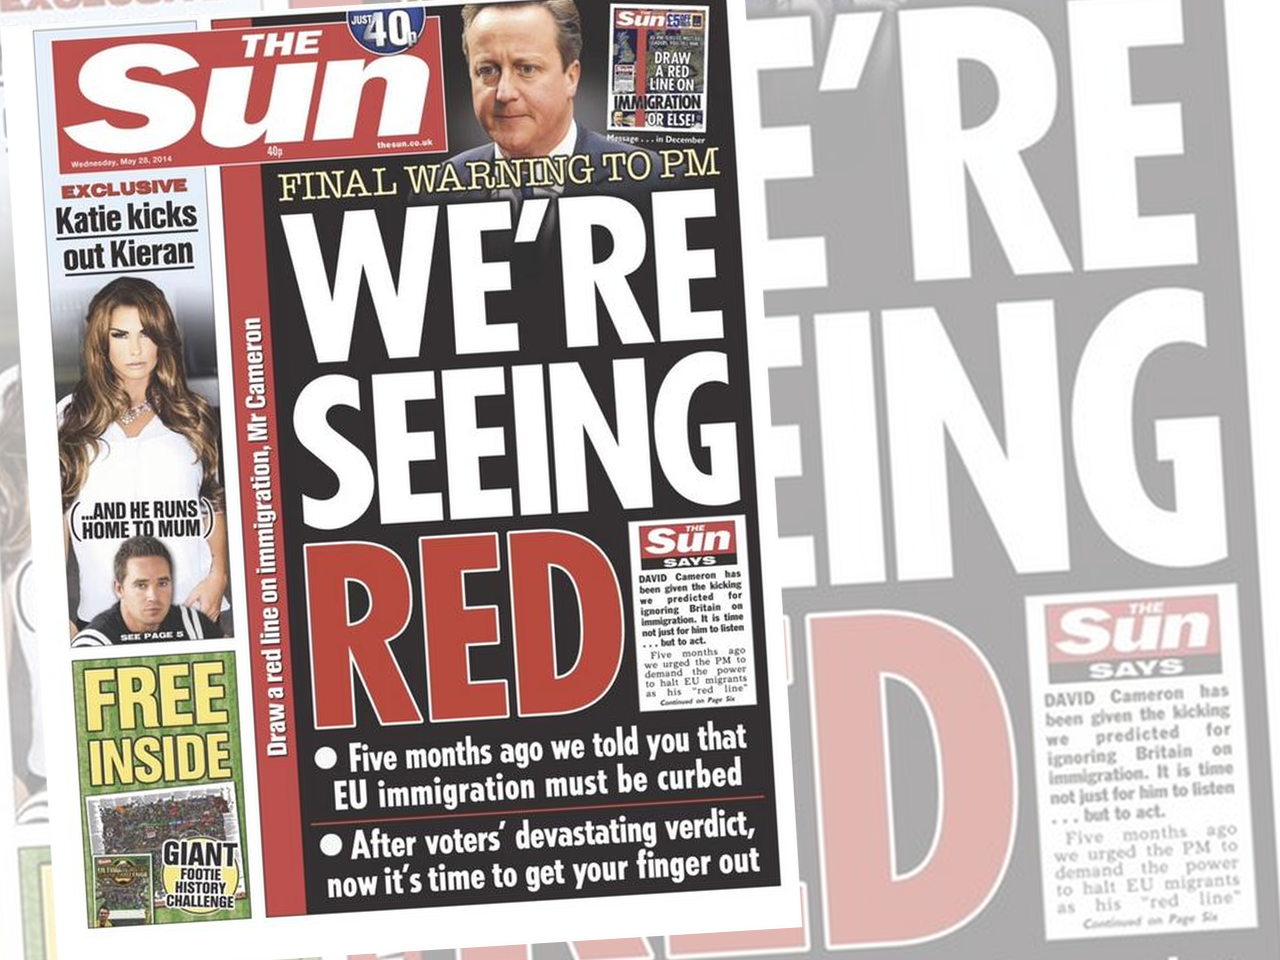 The Sun Issues 'Final Warning' to PM Cameron over UKIP, Immigration